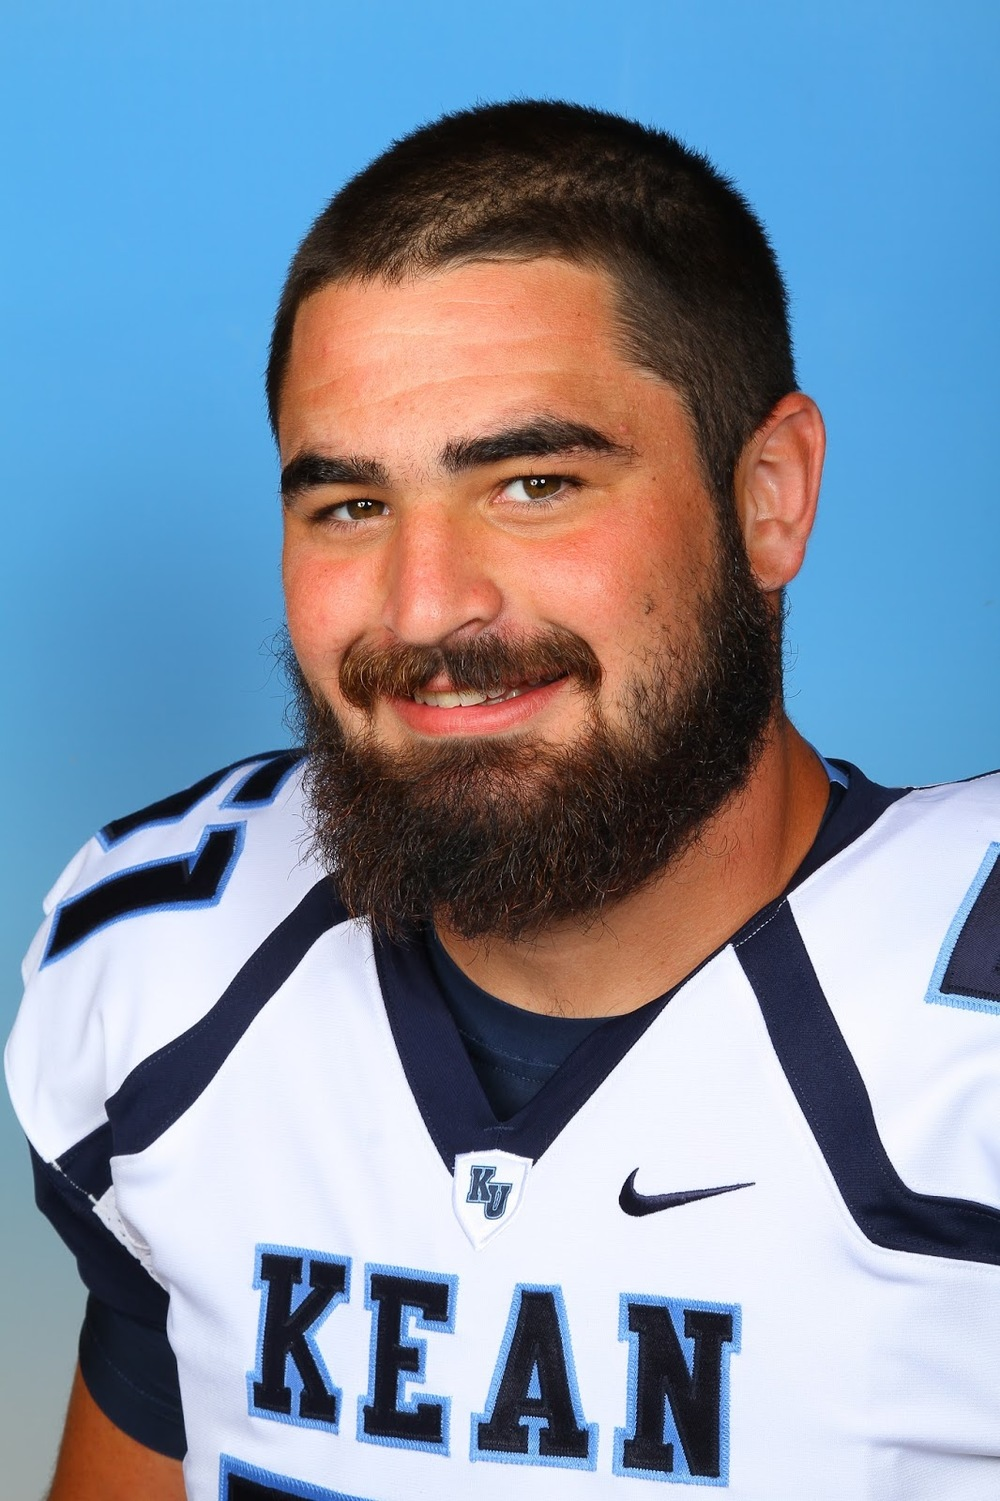 Kean University student-athlete Mike D'Addario, a senior economics major from Lacey Township, was named to the National Football Foundation Hampshire Honor Society & College Hall of Fame.